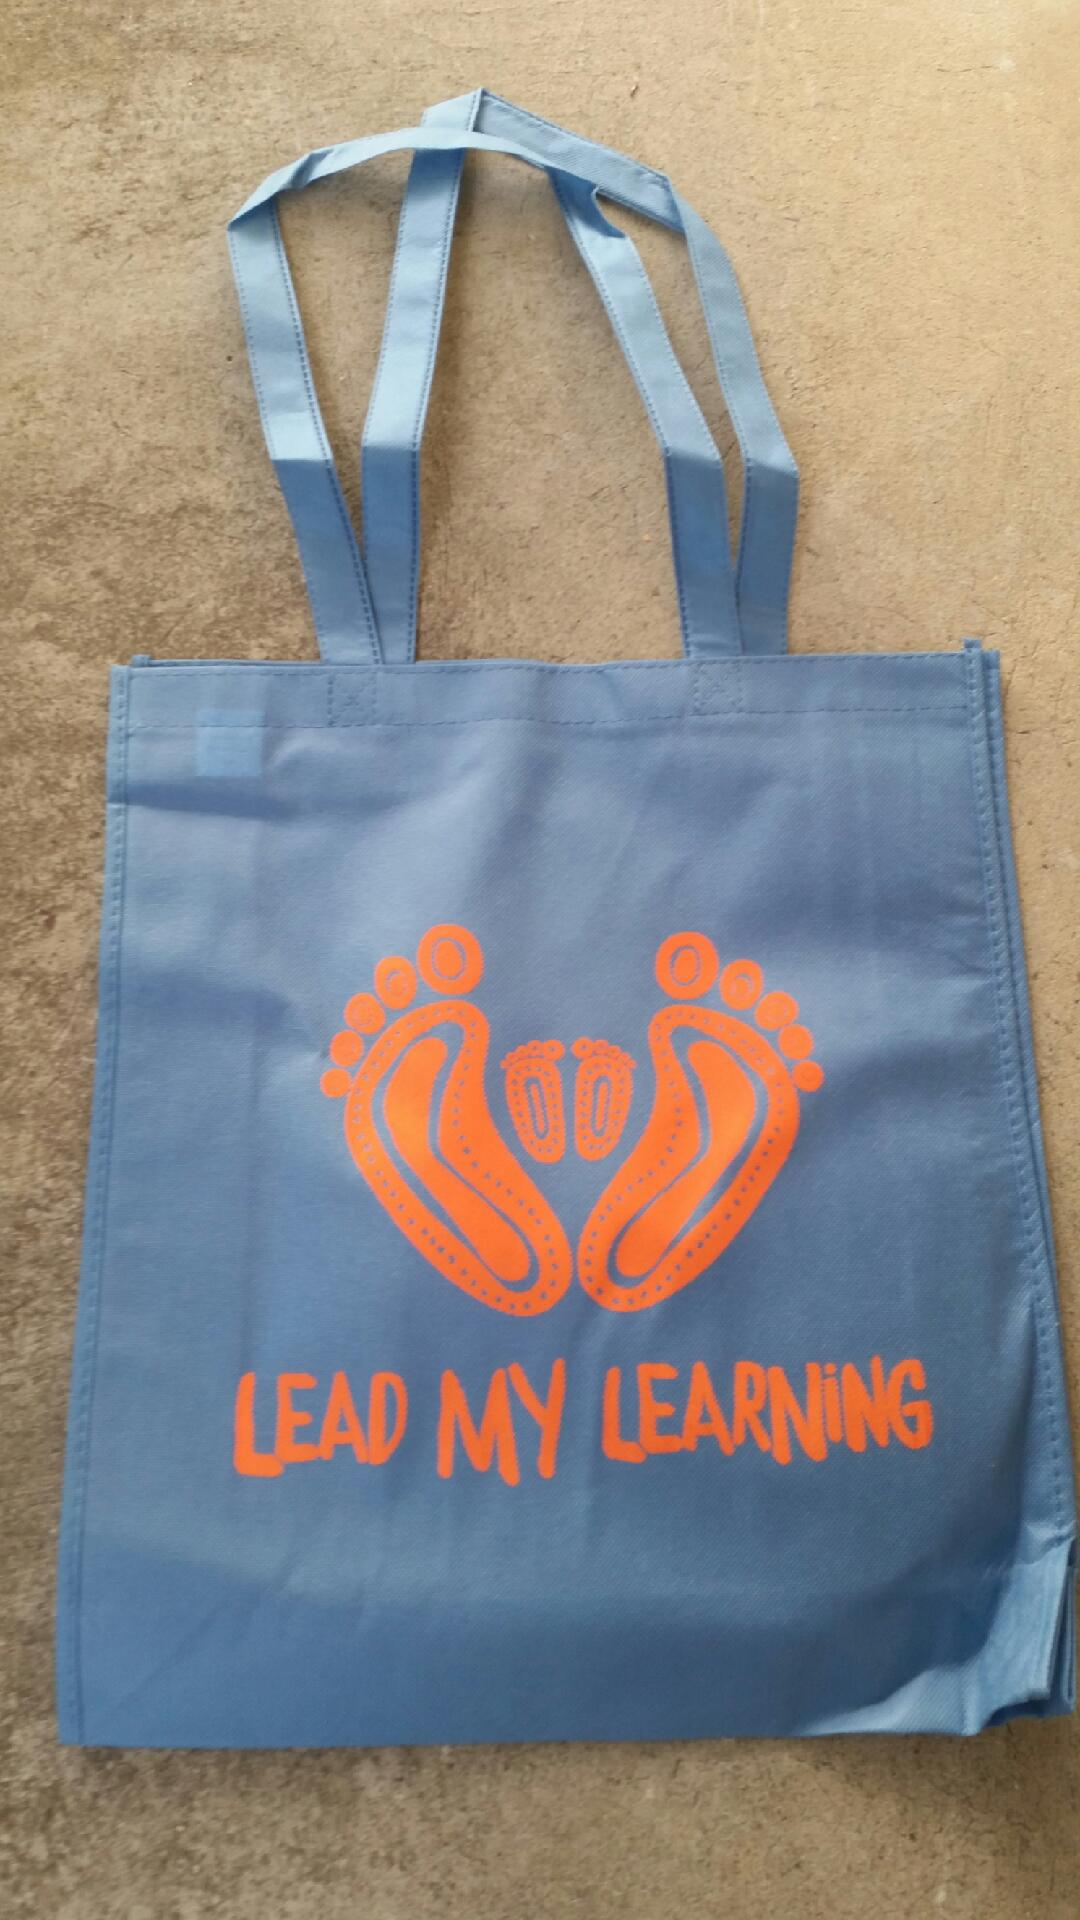 Lead My Learning Baby Bounty Bag Image